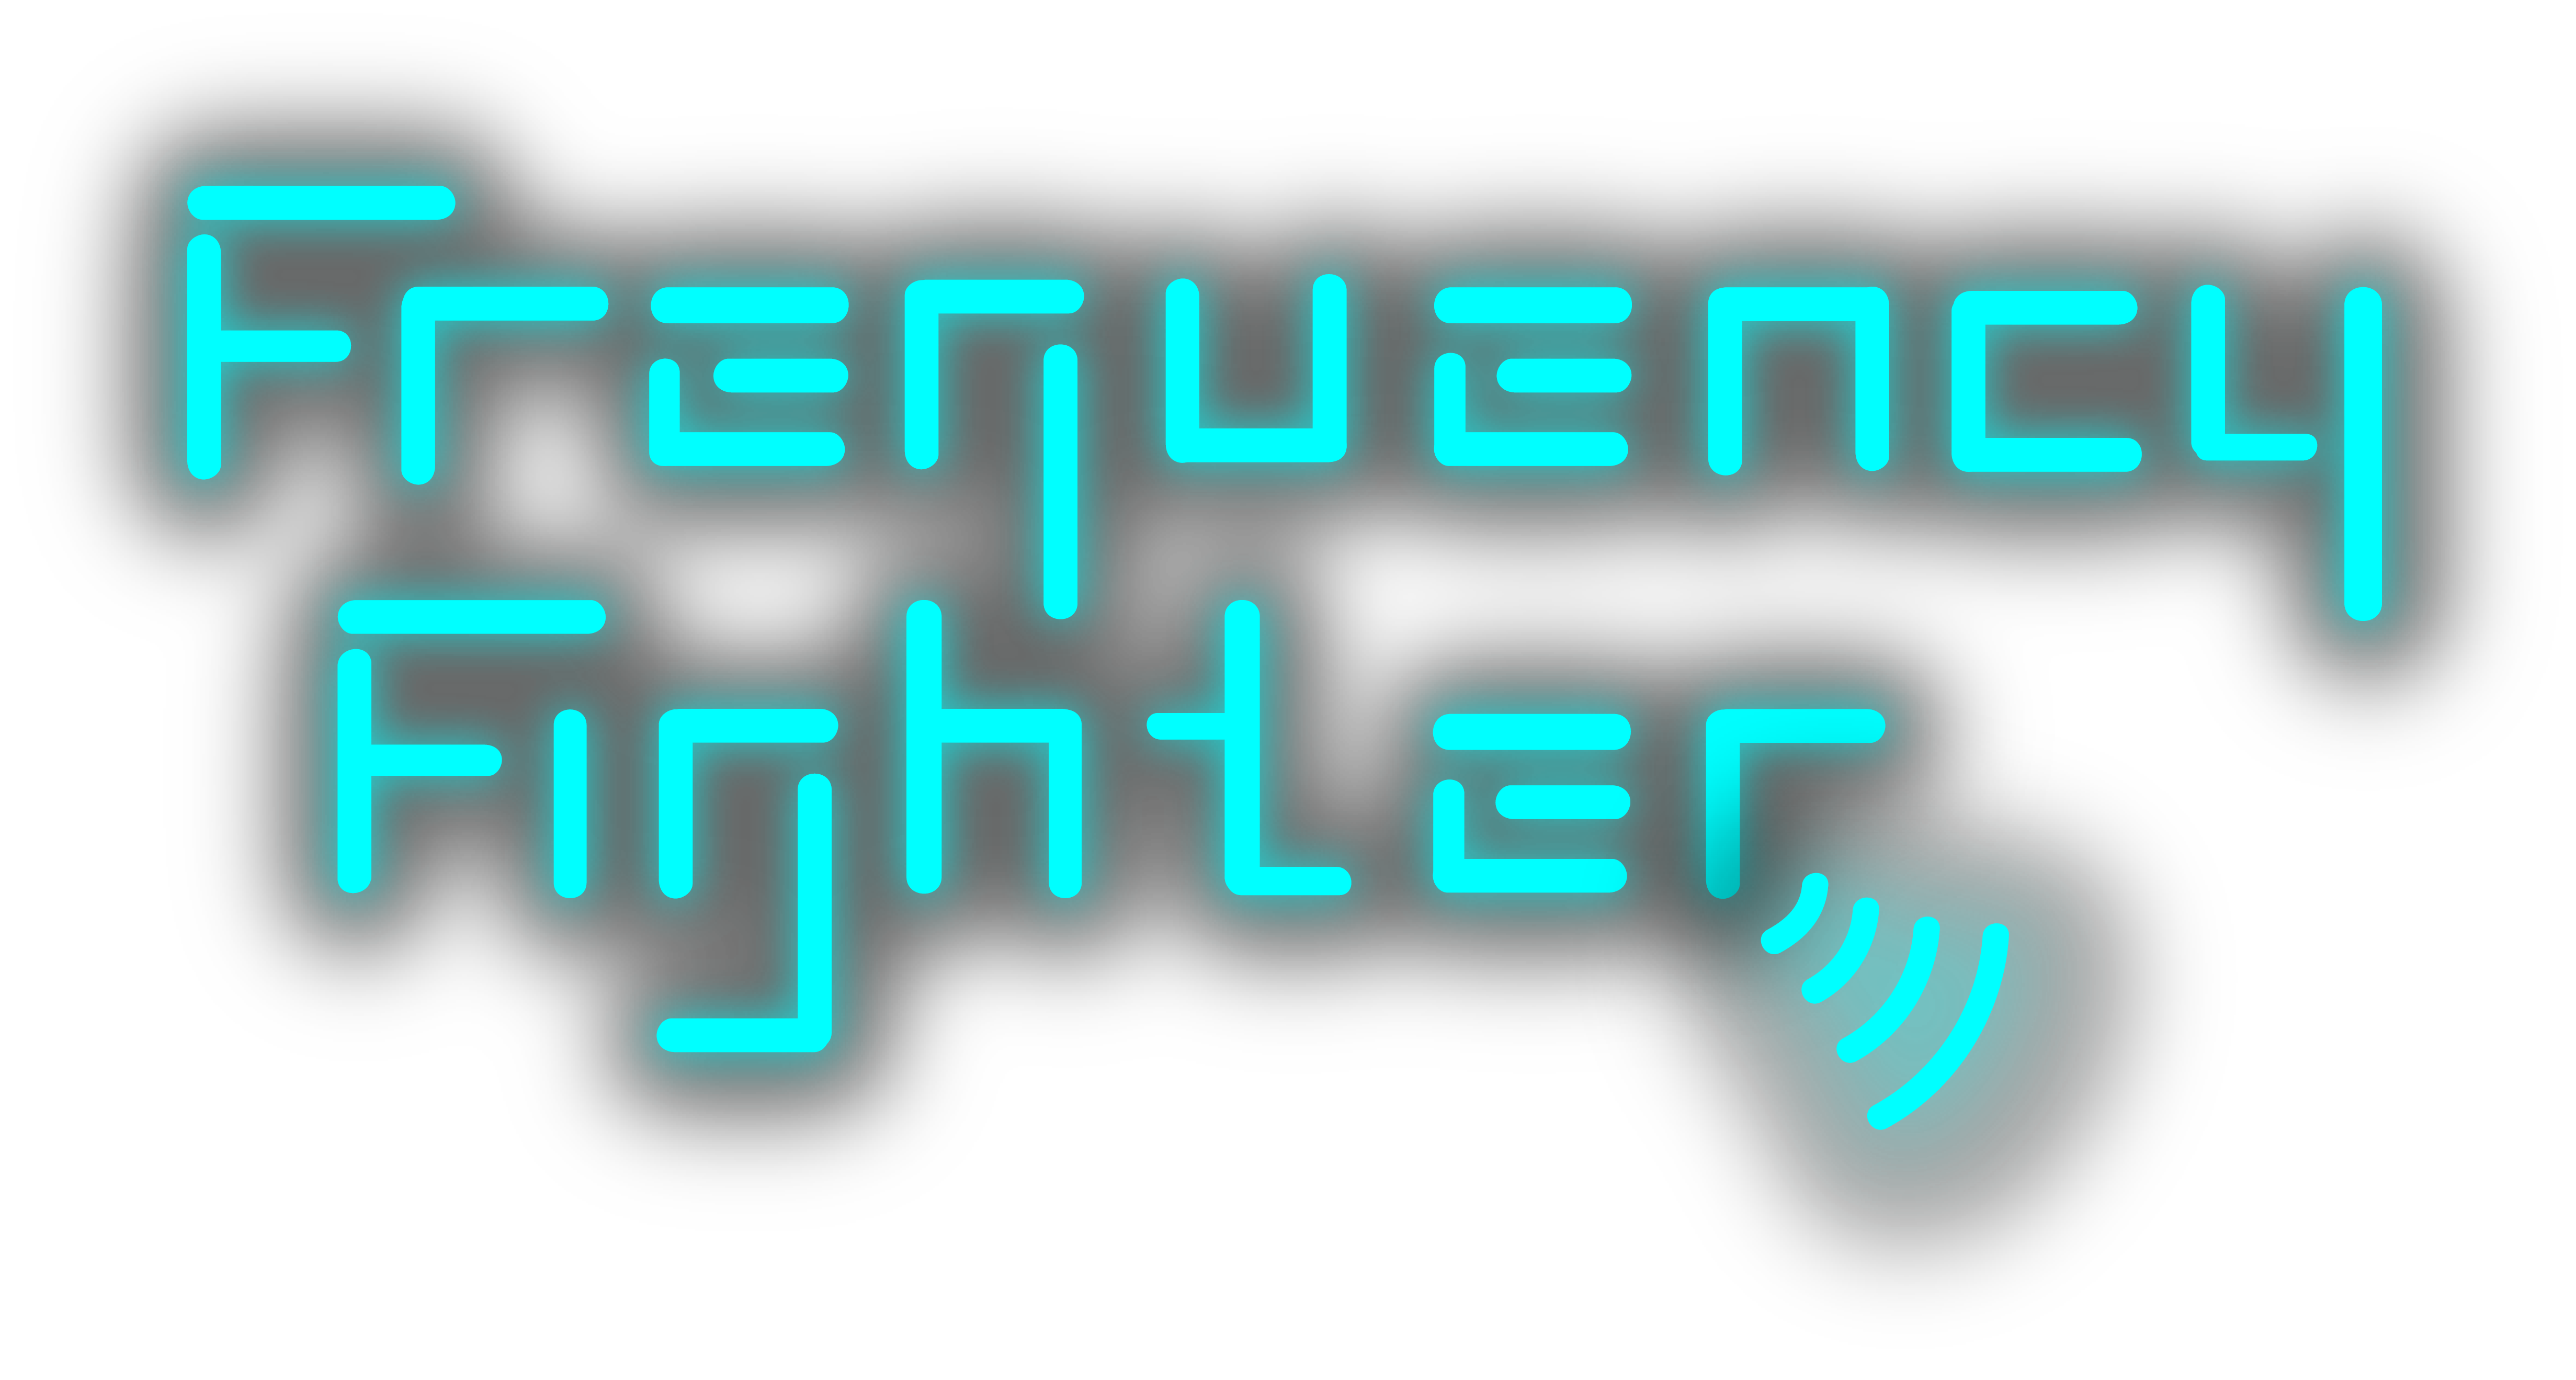 Frequency Fighter